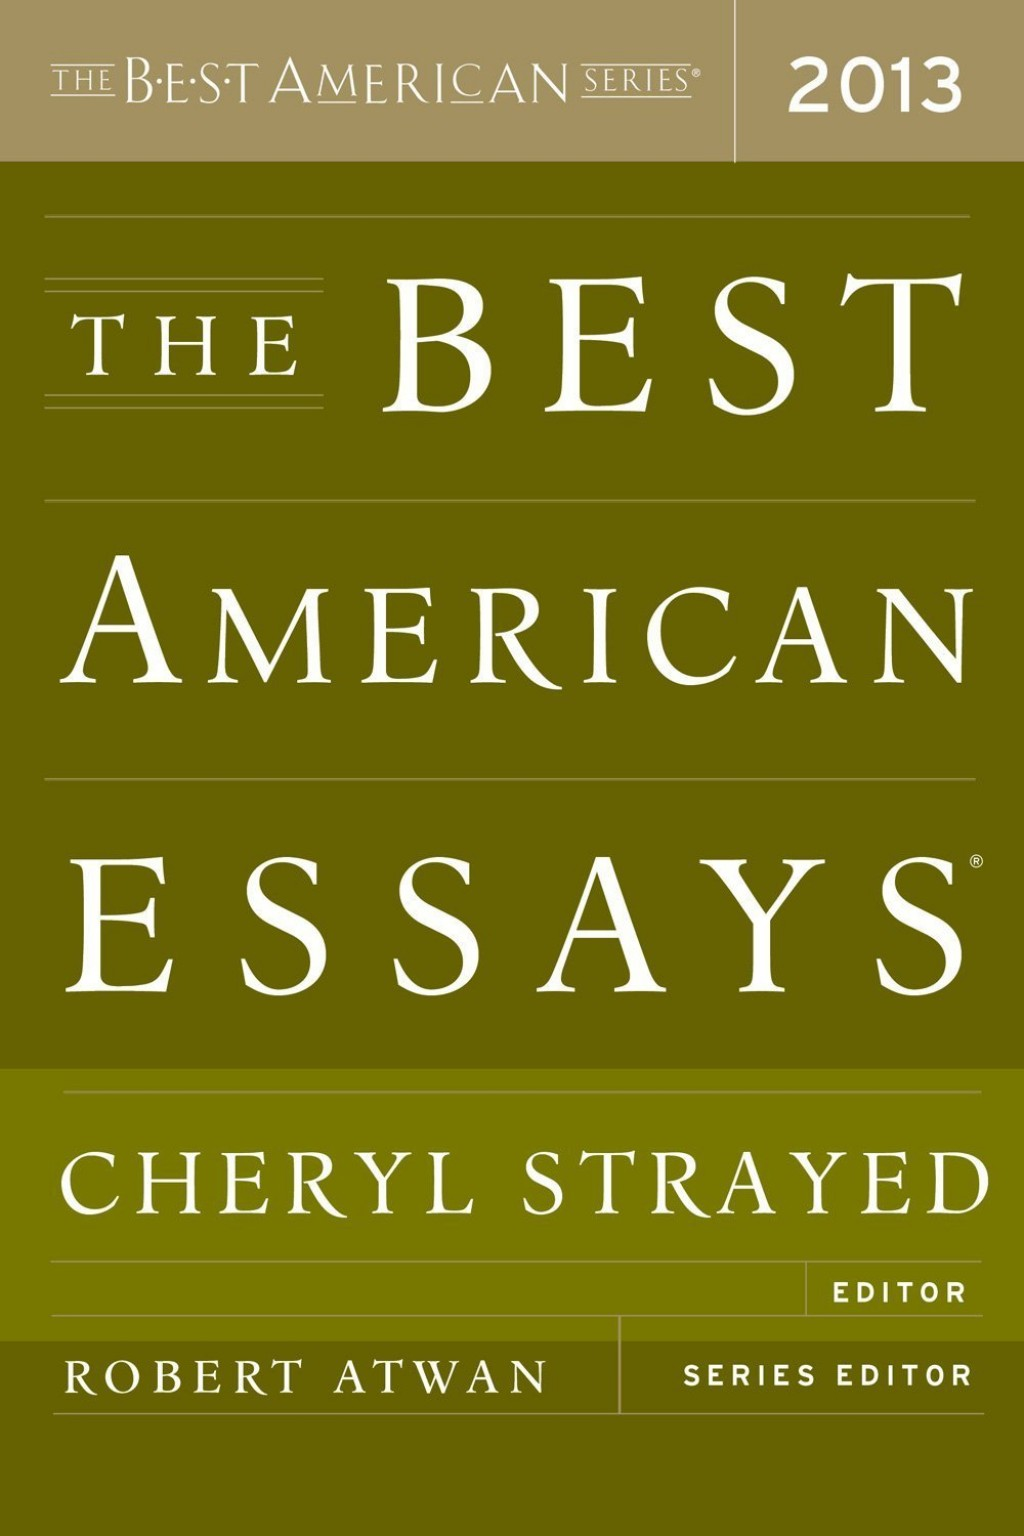 004 The Best American Essays Essay Wonderful Of Century Table Contents 2013 Pdf Download Large